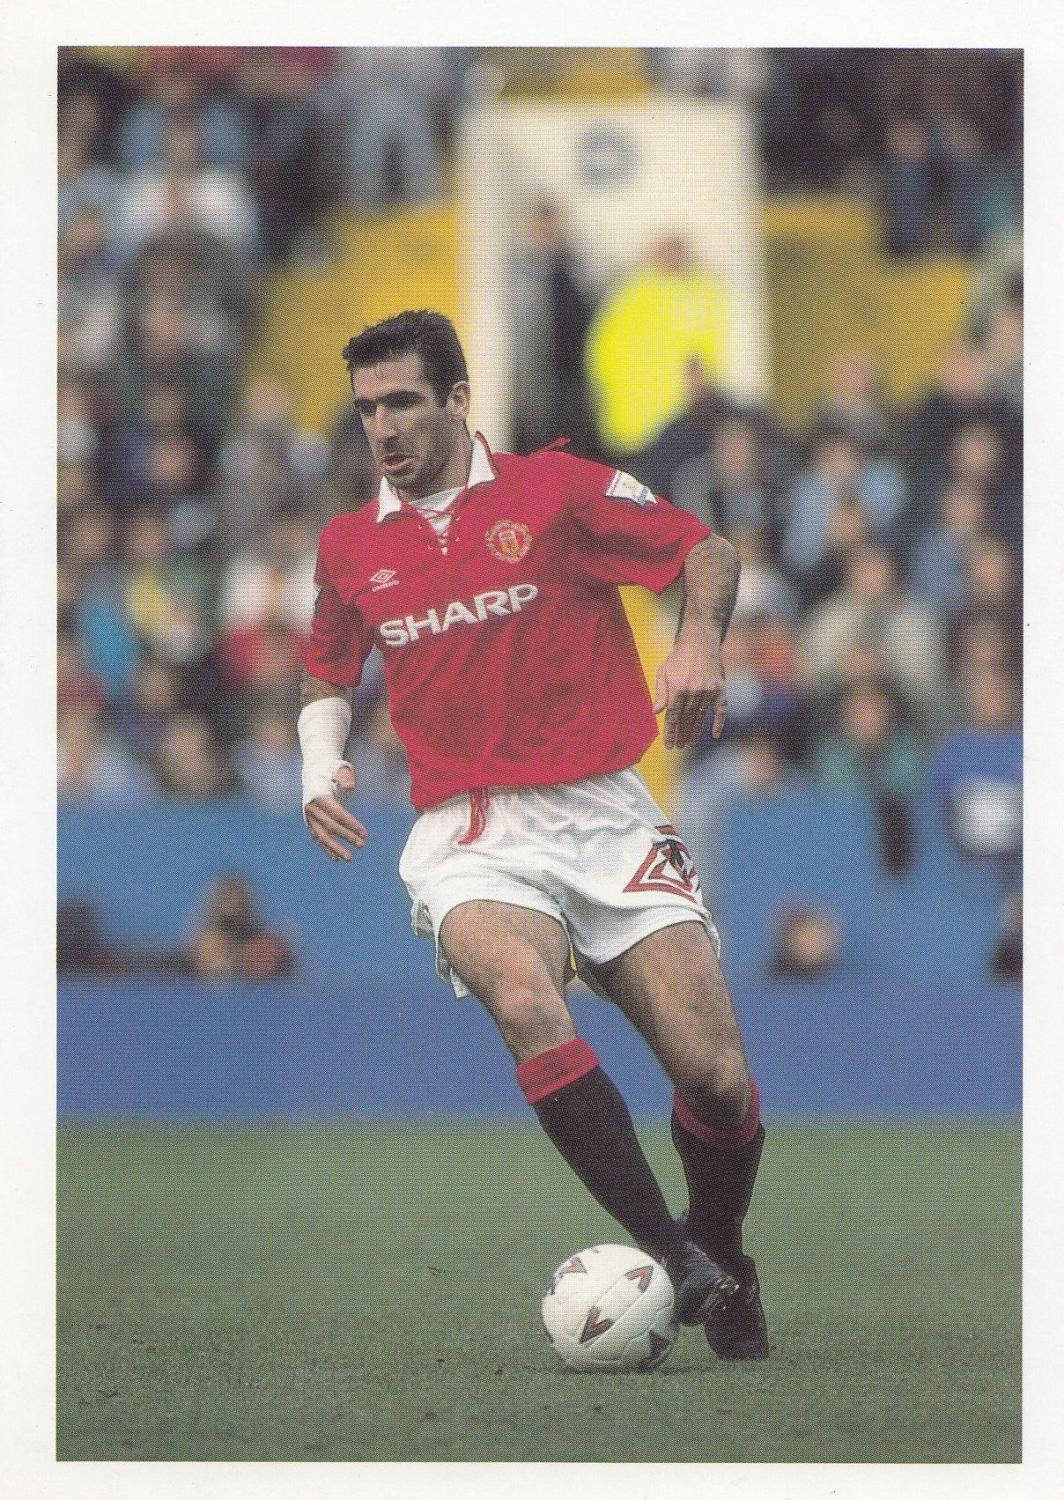 A tempest on the ptich, an absolute dude in retirement. Eric Cantona French France International Football Striker Postcard Manuscript Nbsp Nbsp Paper Nbsp Collectible Postcard Finder